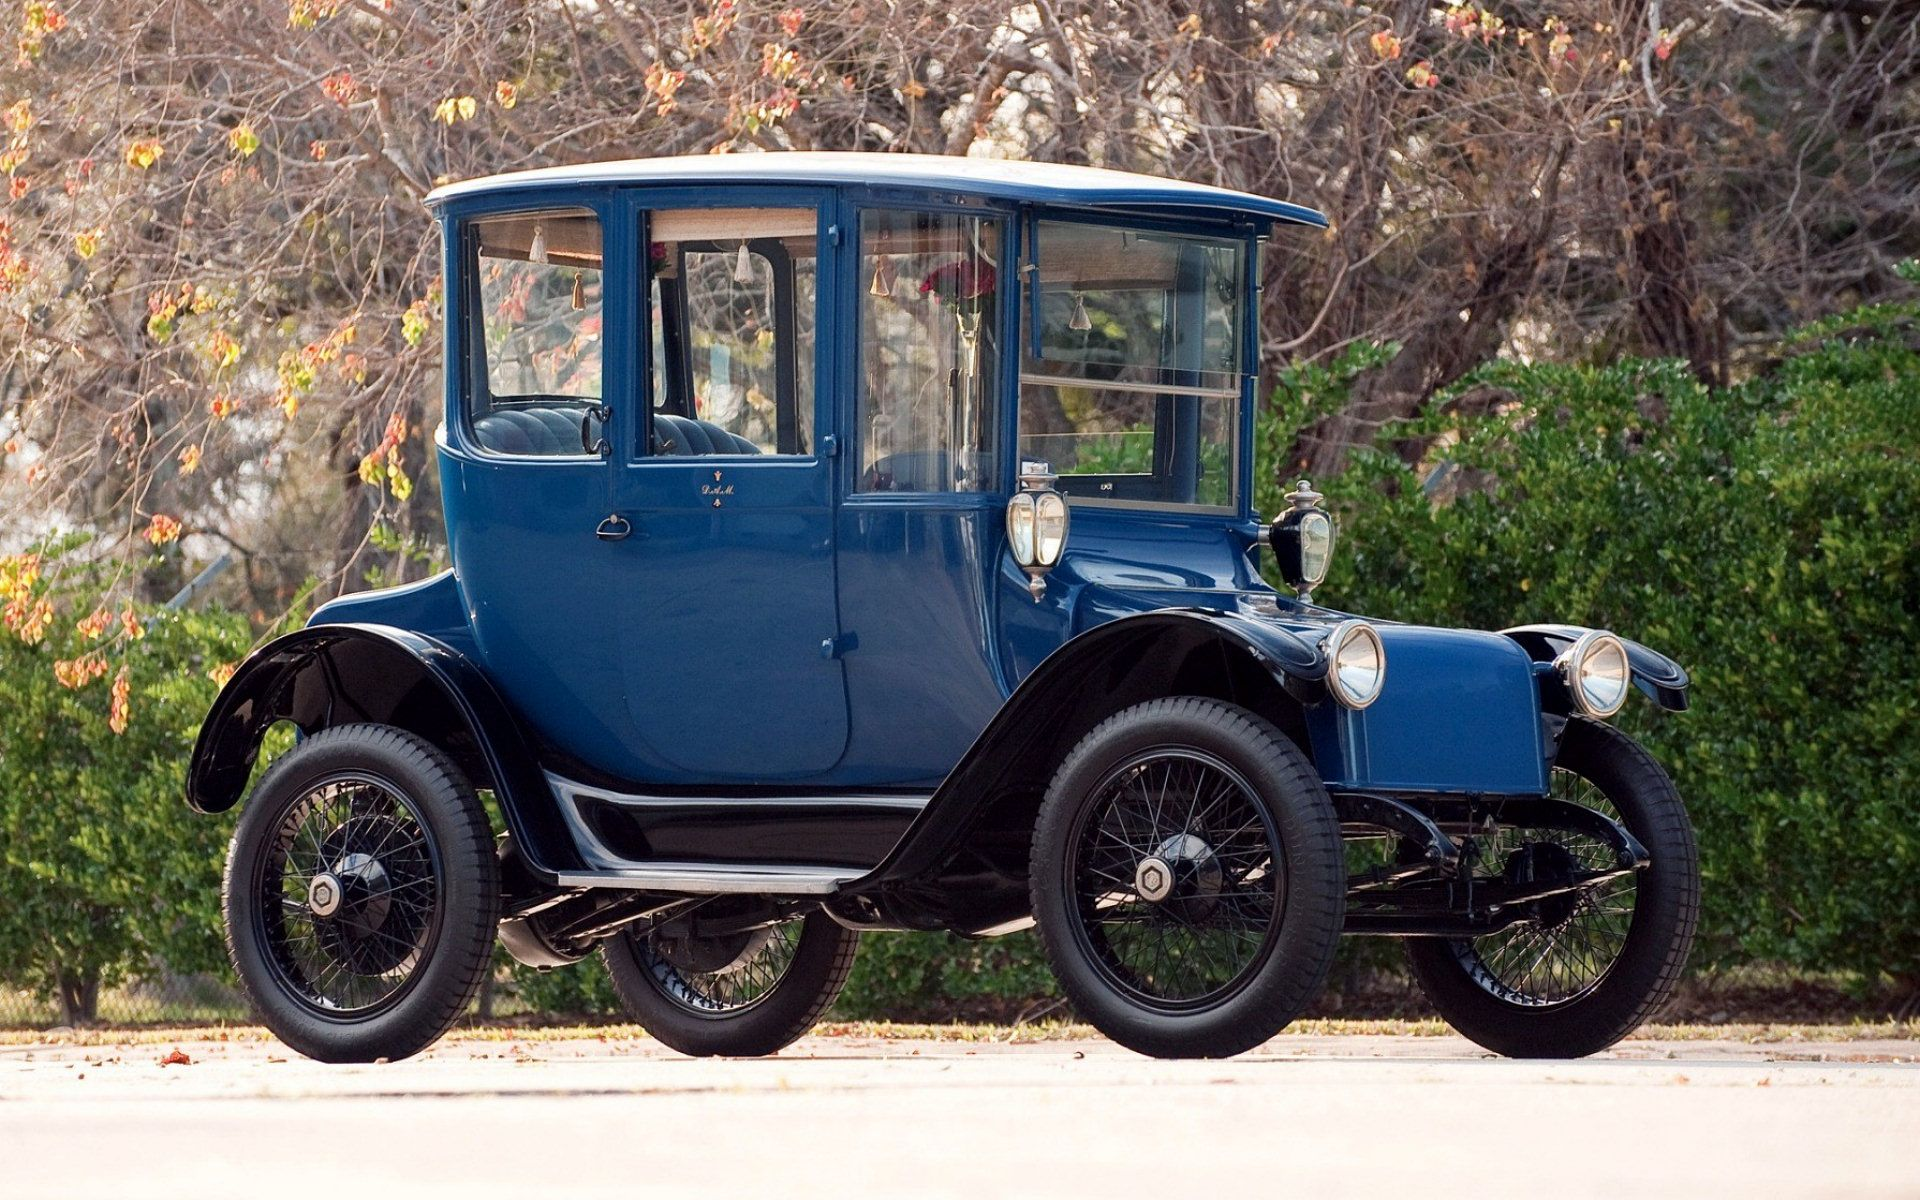 Hd Vintage Classic Old Car Wallpaper Download Free 133394